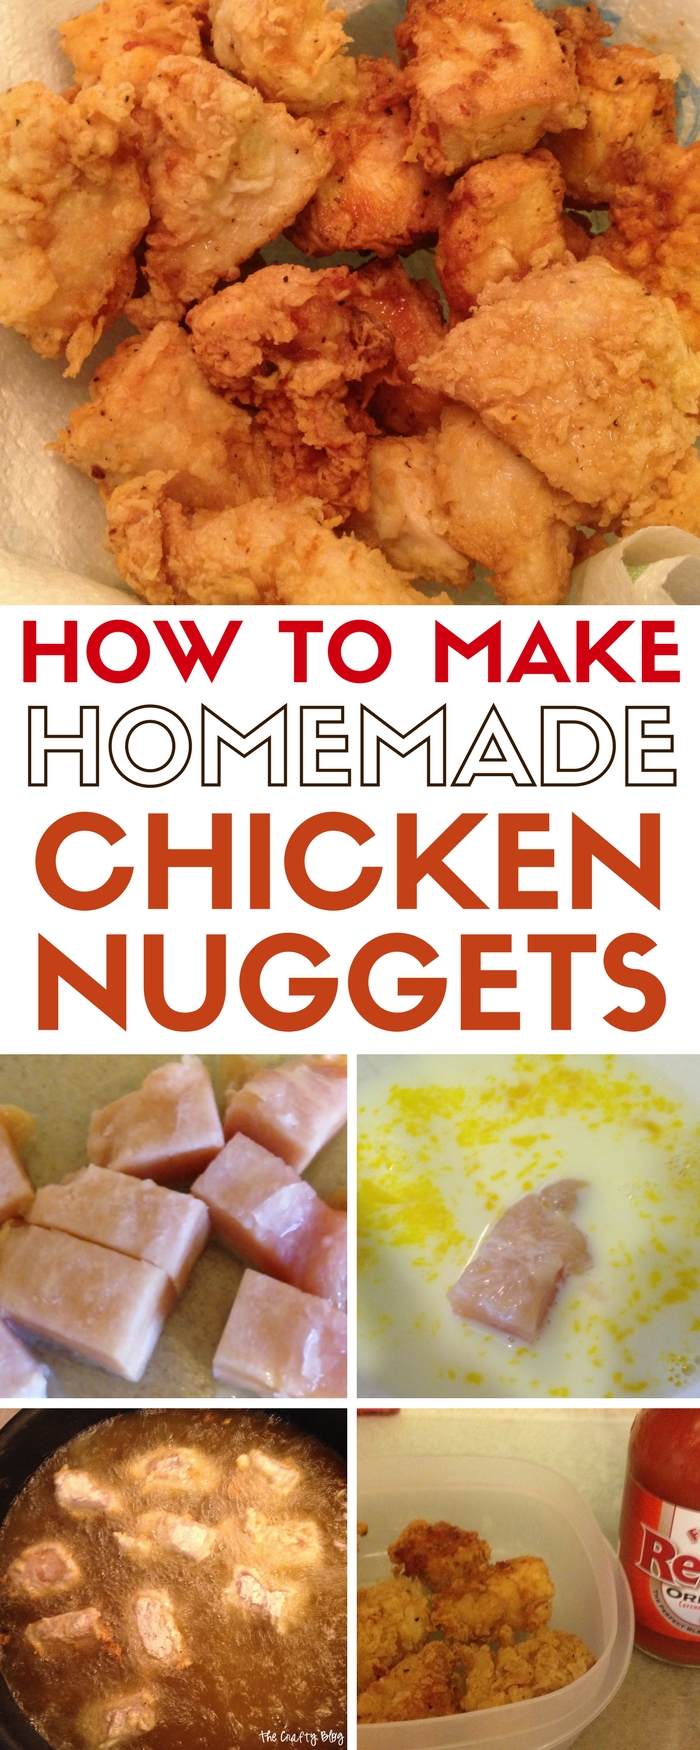 Homemade Chicken Nuggets  Chicken Nugget Recipe  Families And Kids   Recipe Idea  Easy